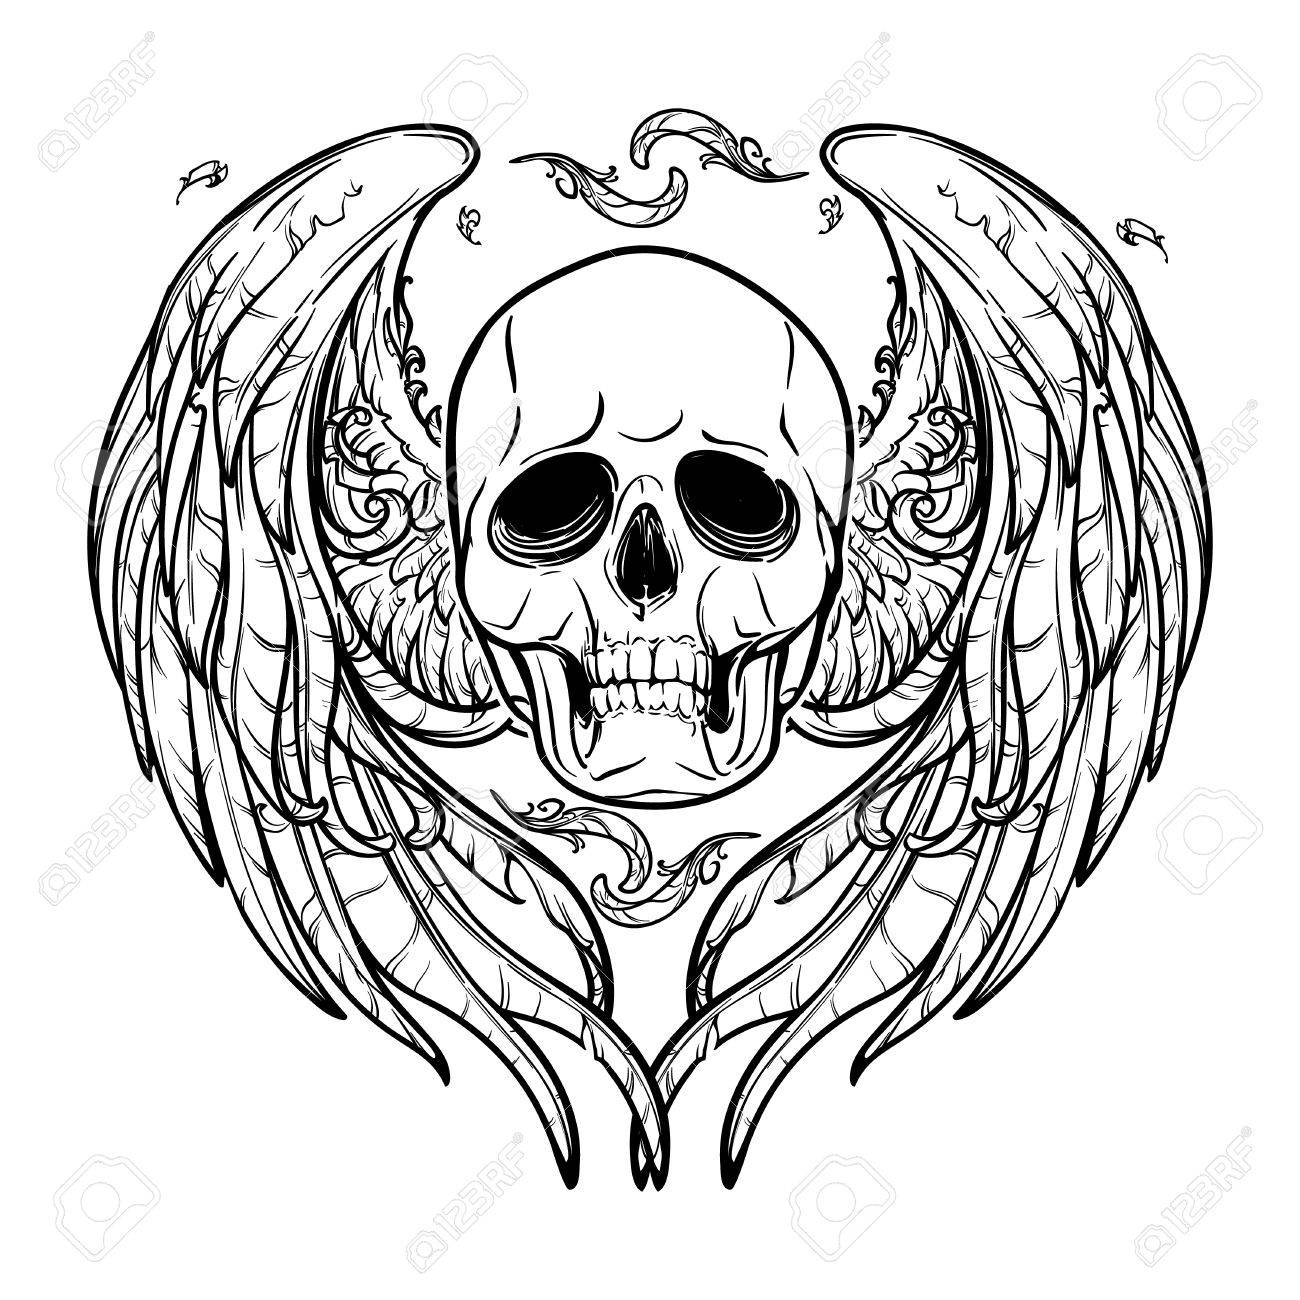 1300x1300 Human Skull With Feathered Wings Behind Isolated On White